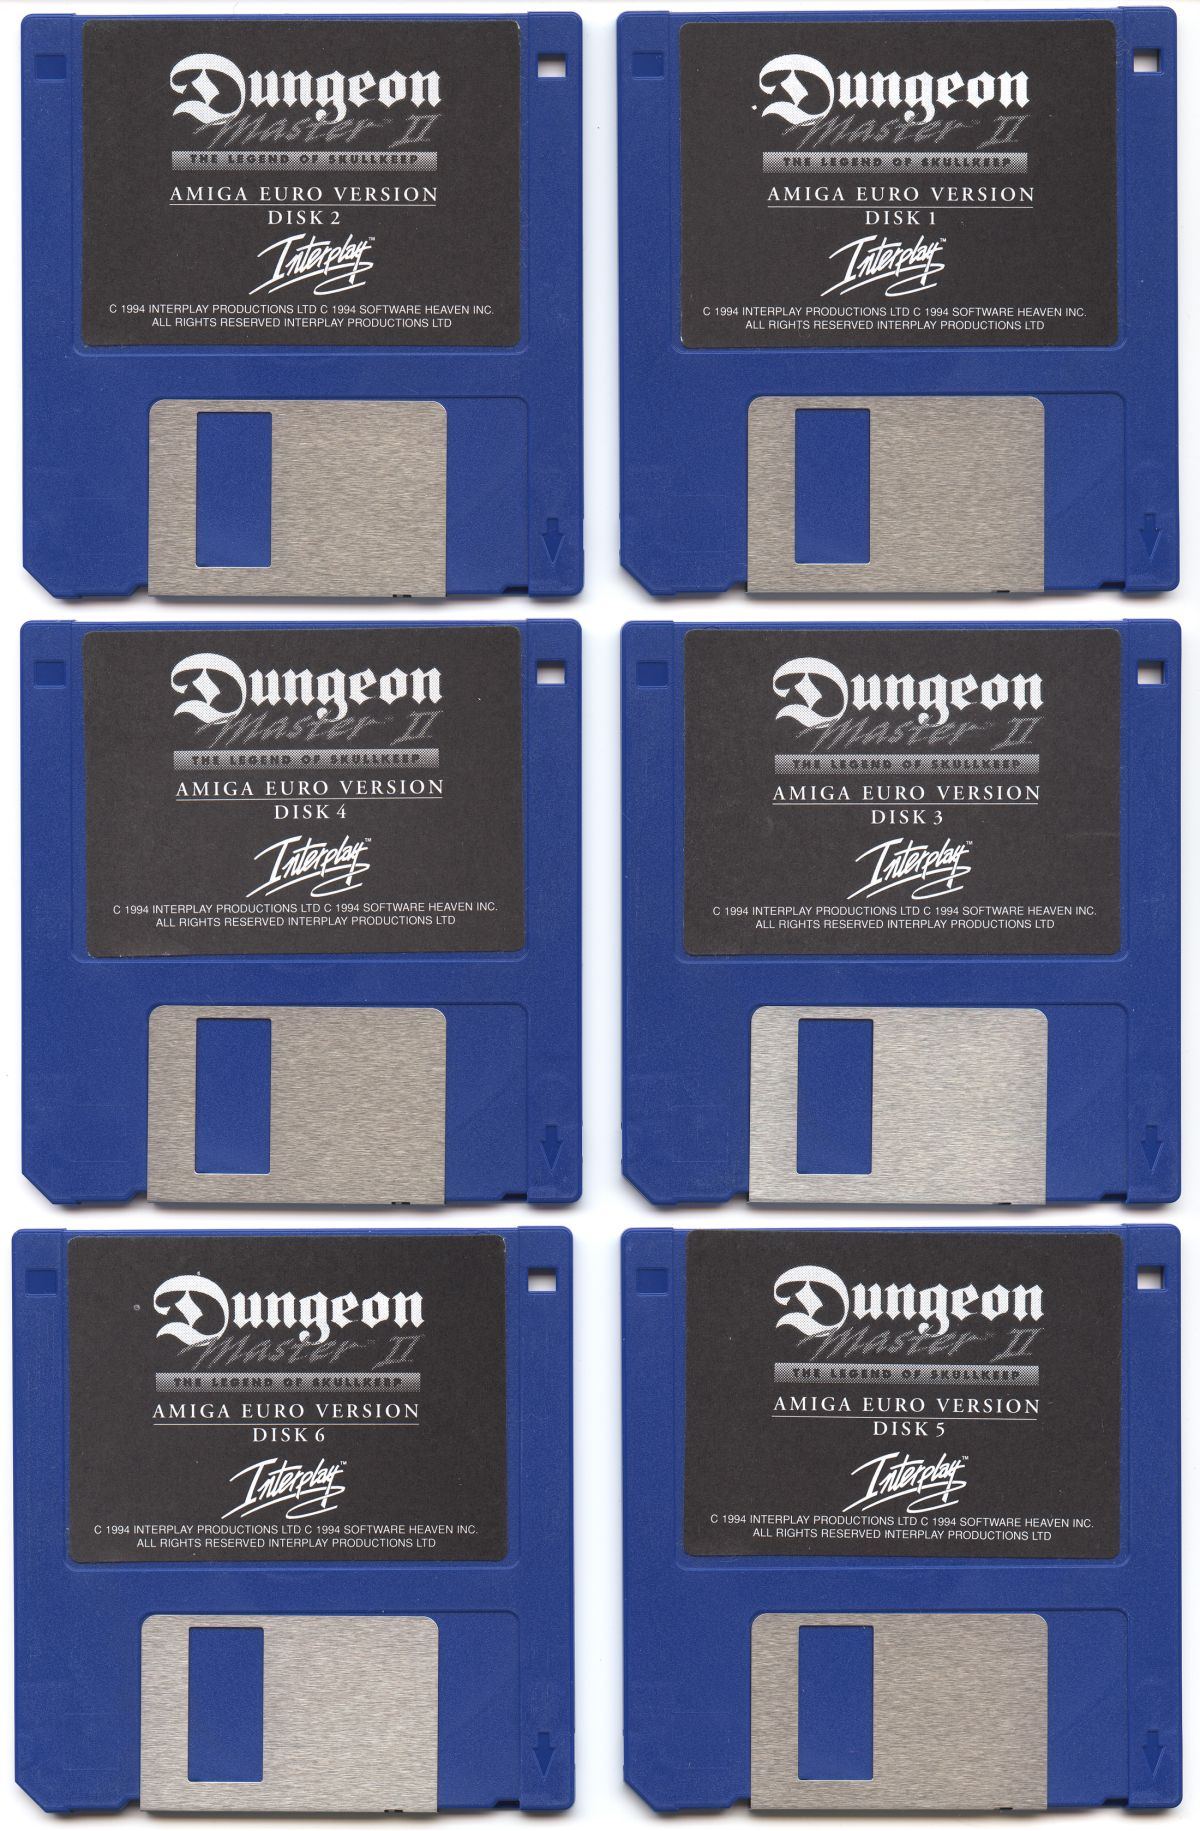 Dungeon Master II for Amiga Floppy Disks (German)